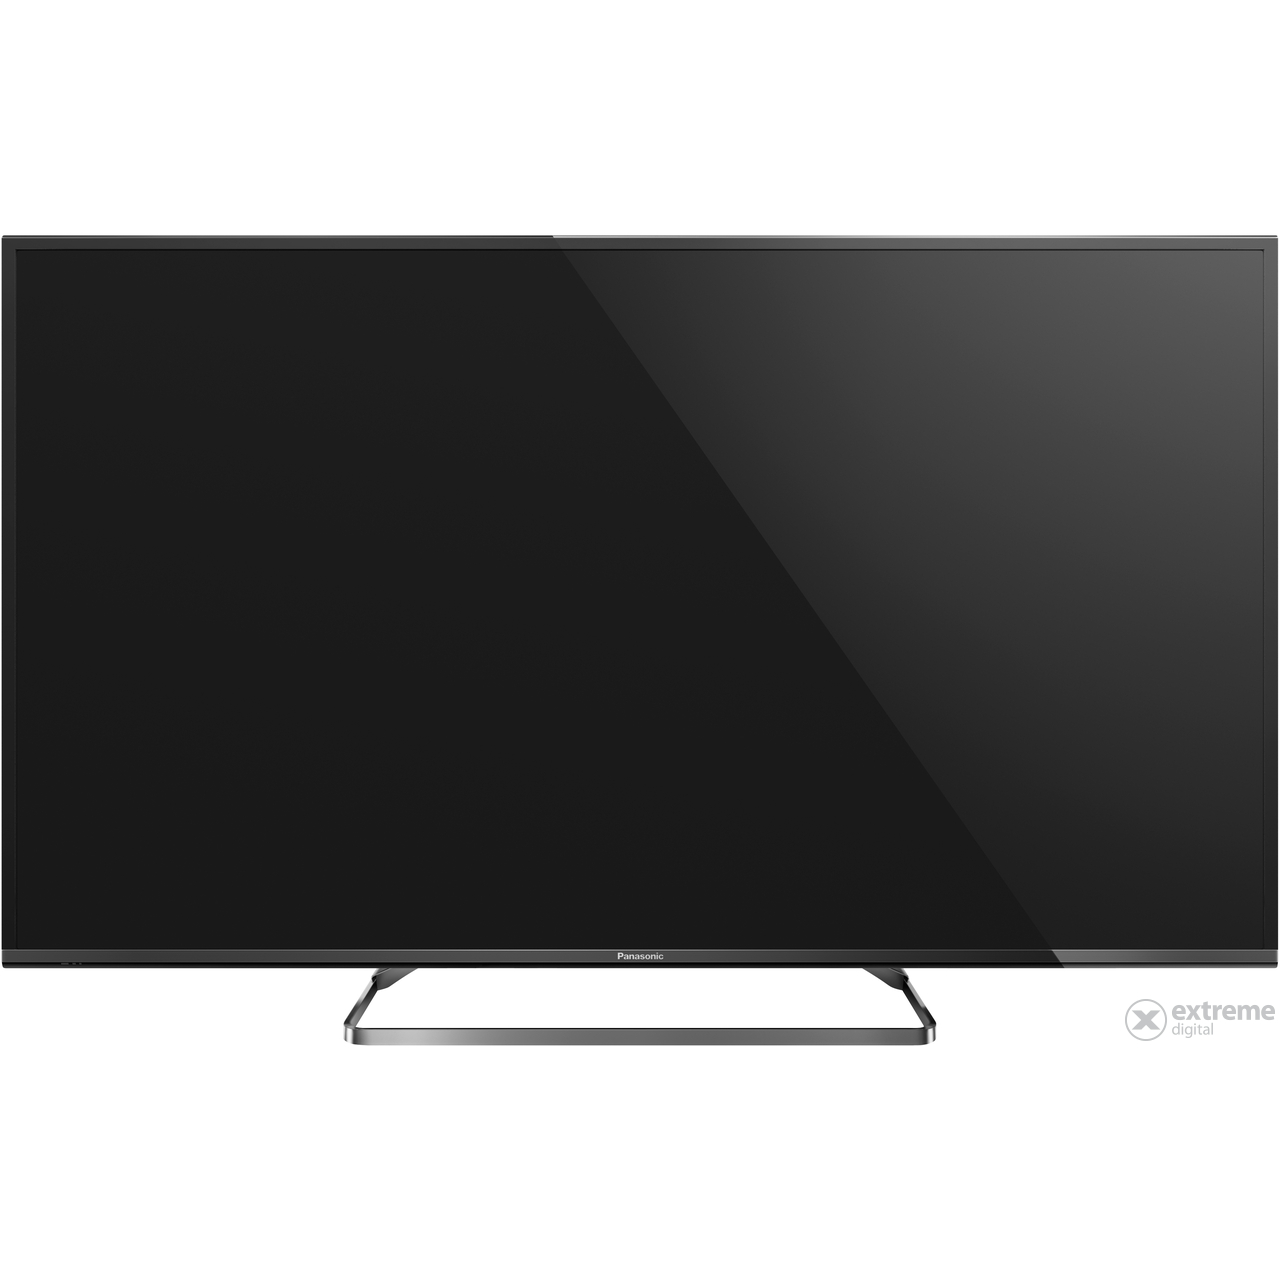 panasonic-tx-40cx670e-uhd-smart-led-televizio_dd8e31b8.jpg